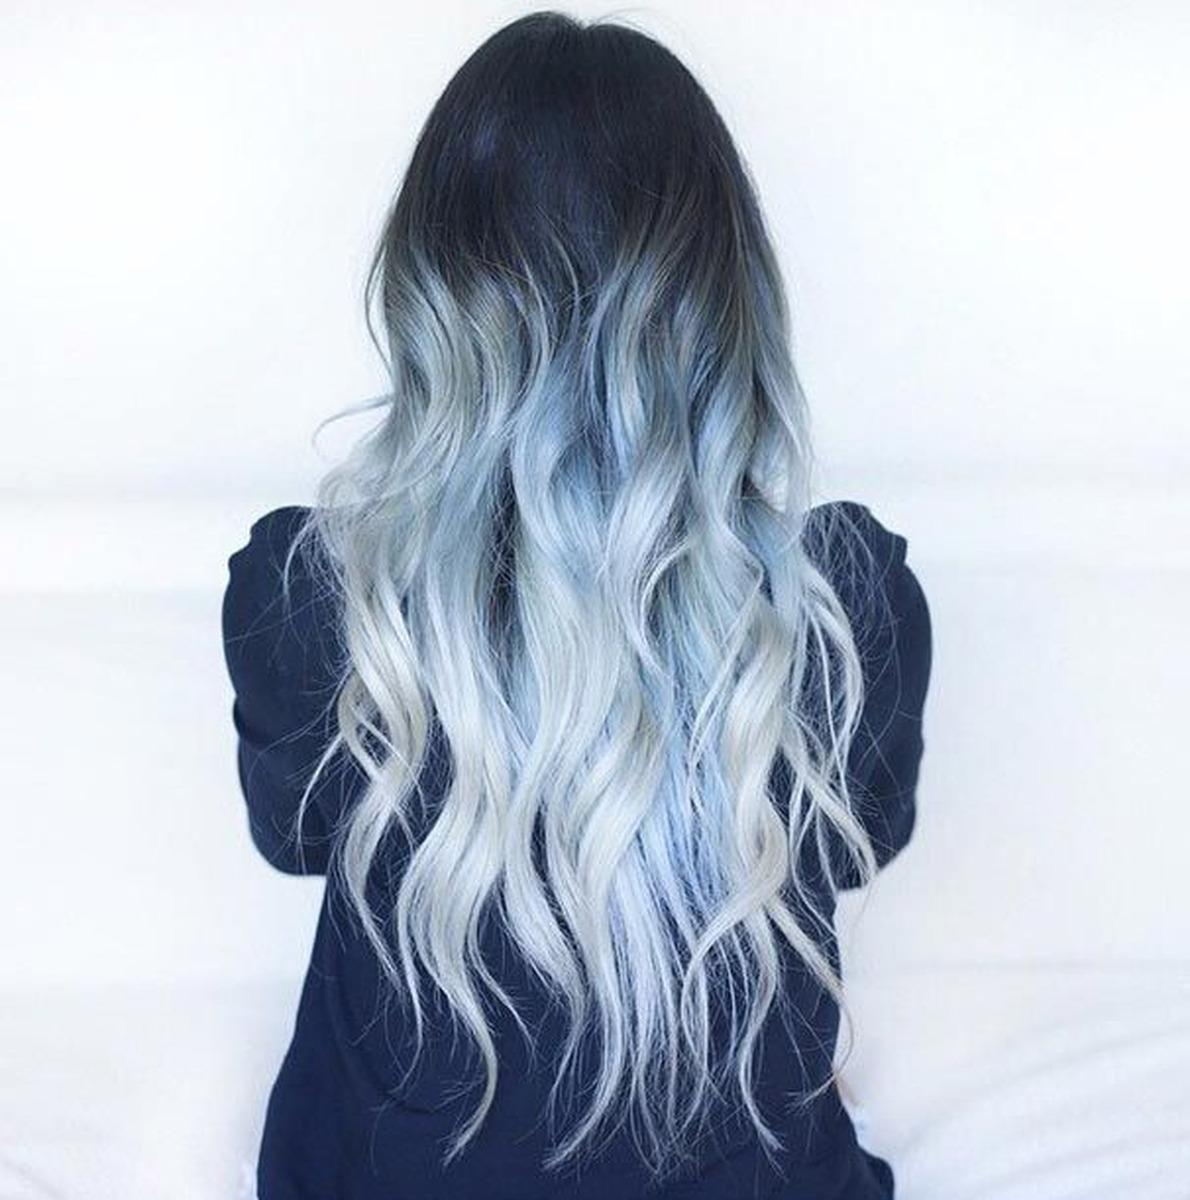 25 Pastel Blue Hairstyles